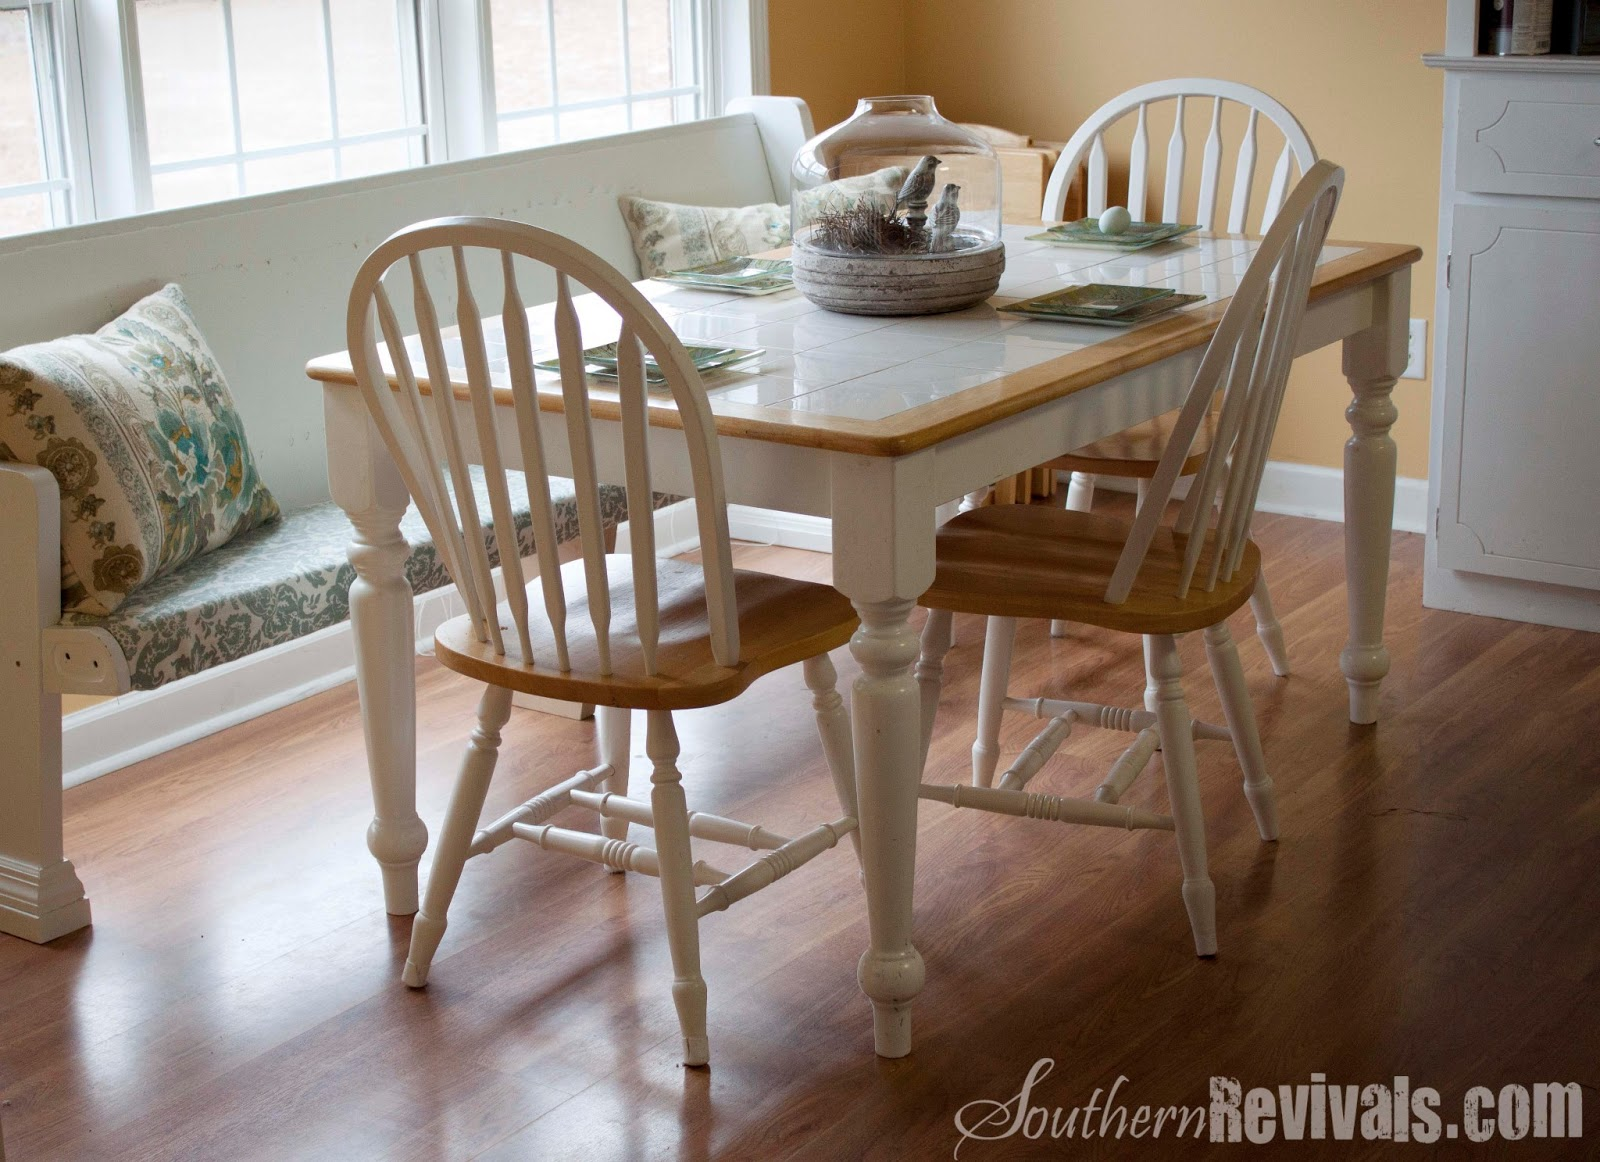 My Spring Tablescape Makeover with World Market - Southern Revivals